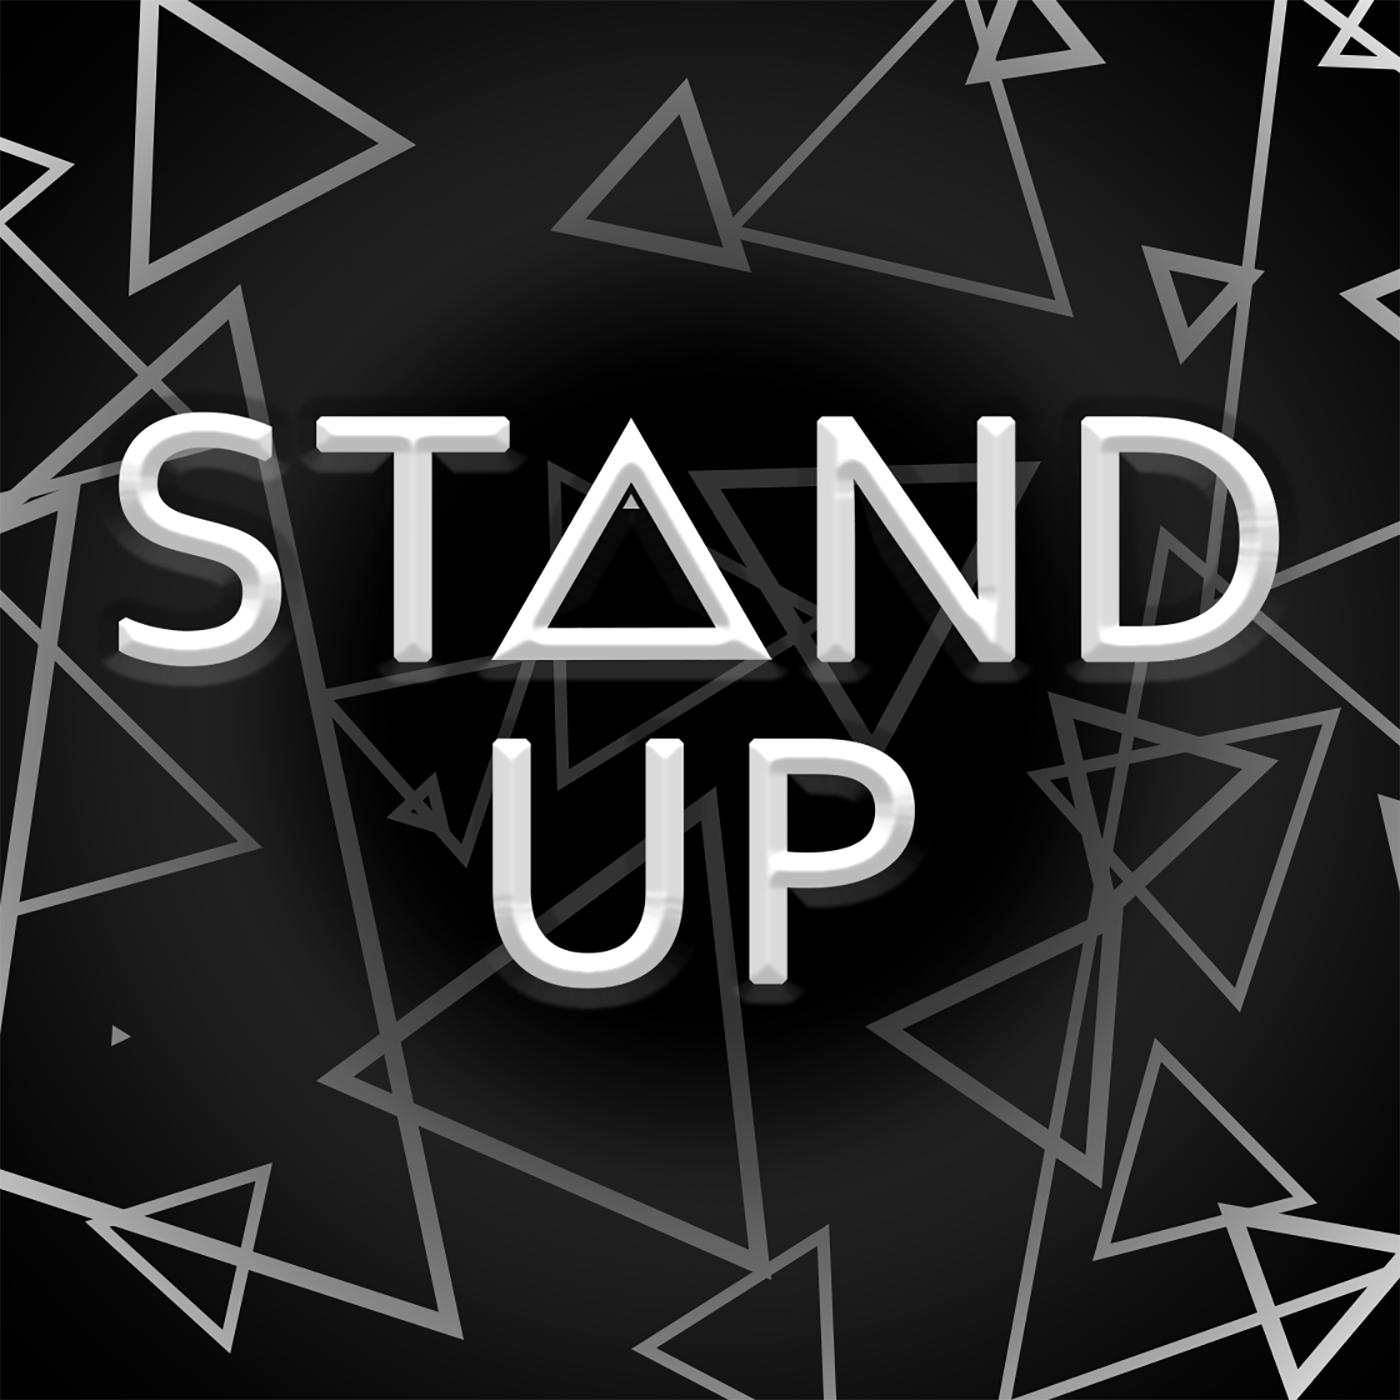 STAND UP (2017.05.05)